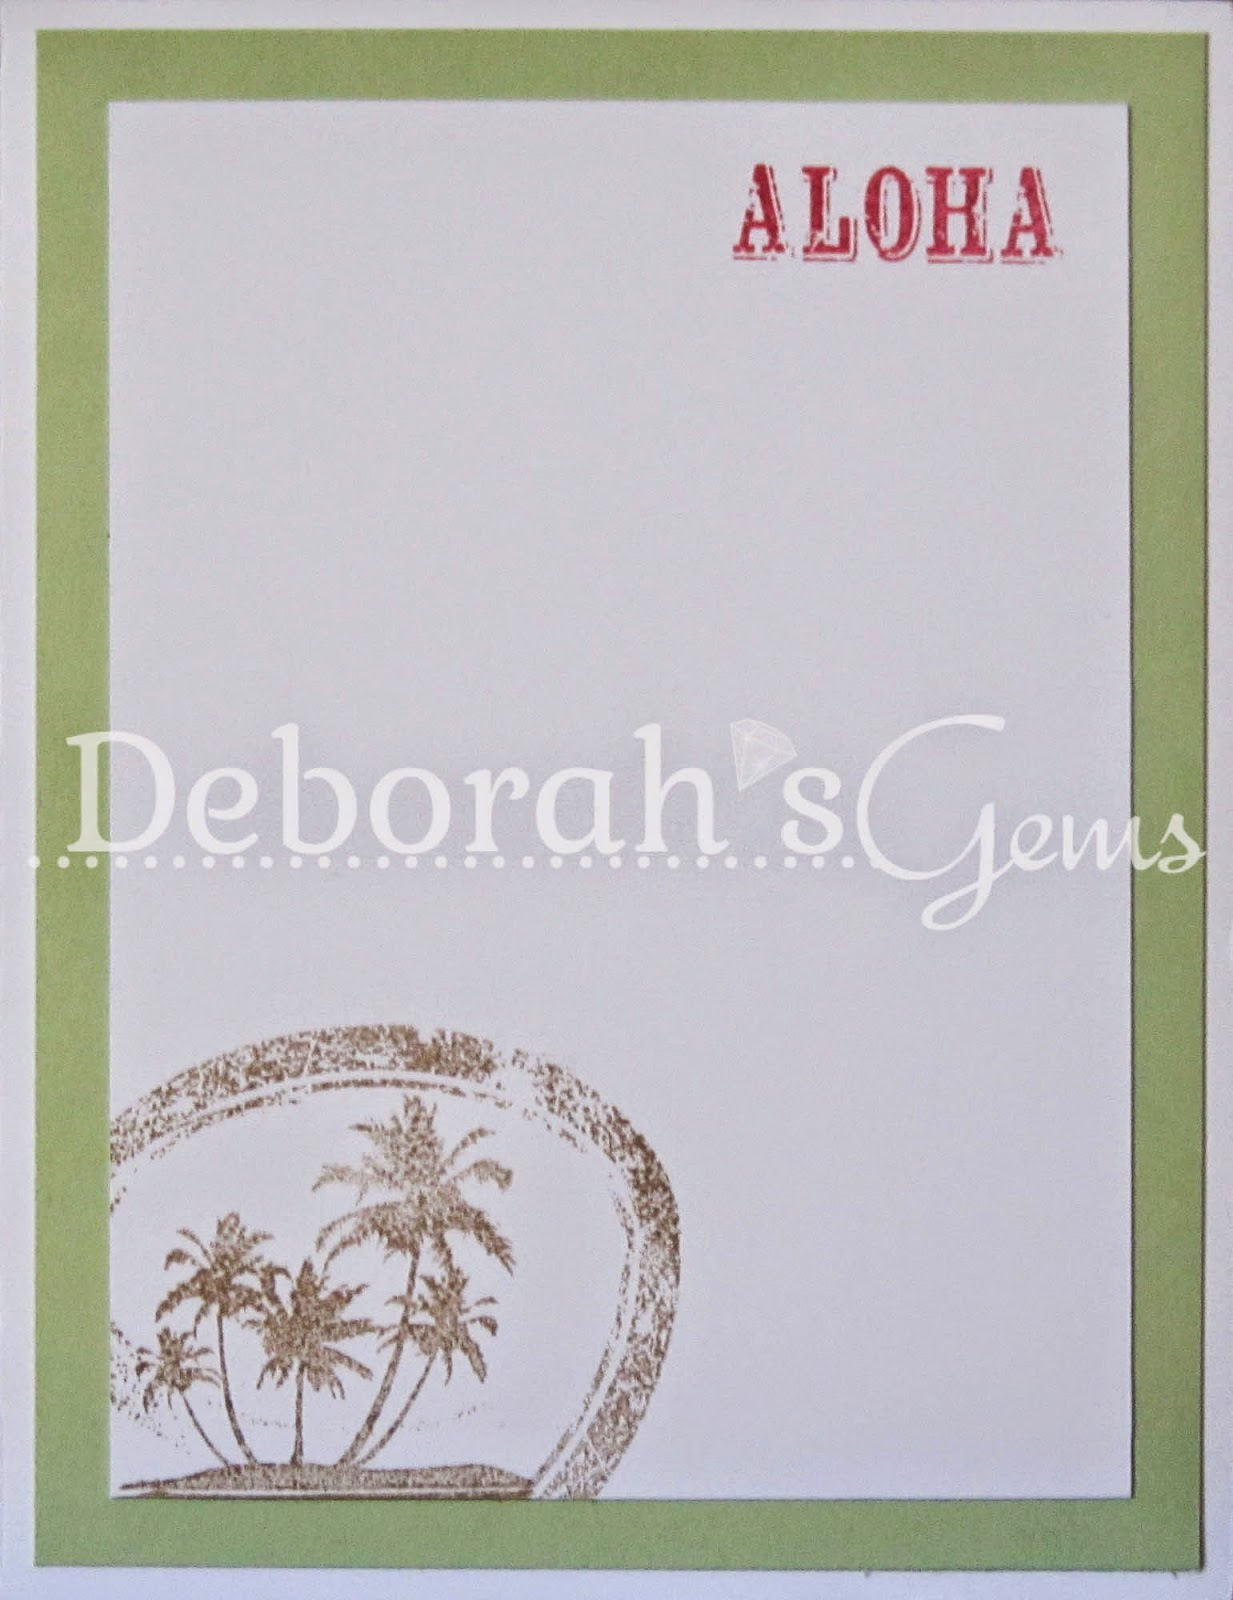 Aloha inside - photo by Deborah Frings - Deborah's Gems